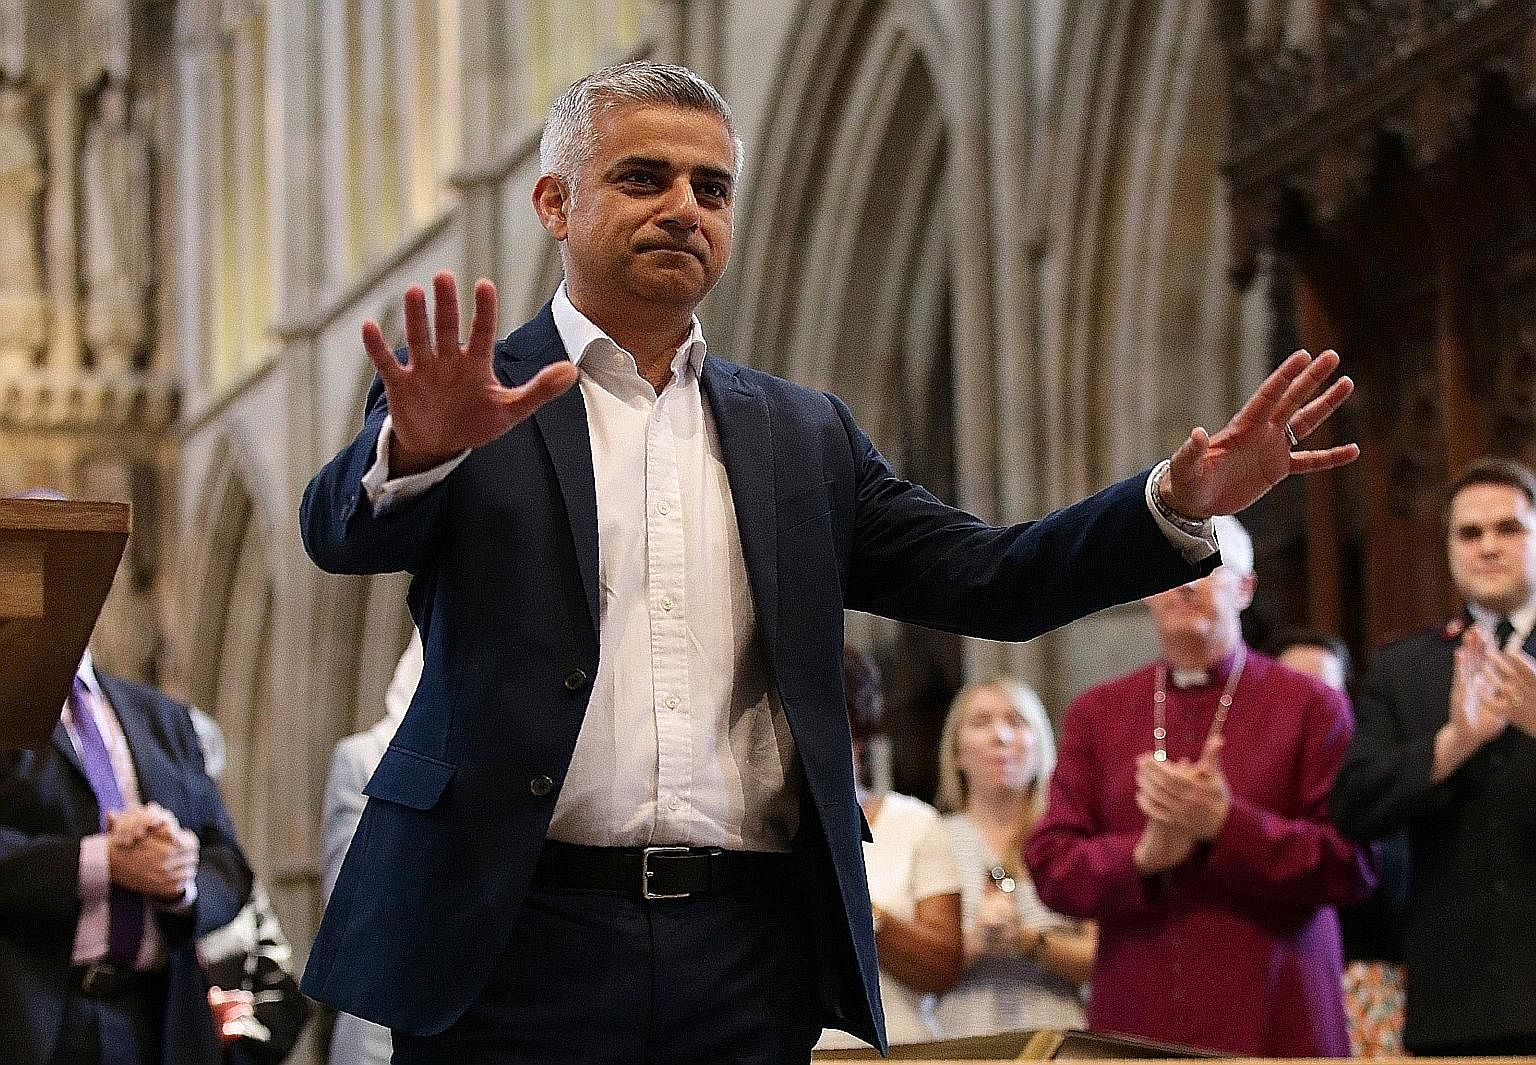 London's incoming mayor Sadiq Khan, who was the Labour candidate, at his swearing-in ceremony yesterday. His win was the sole consolation for the opposition party.